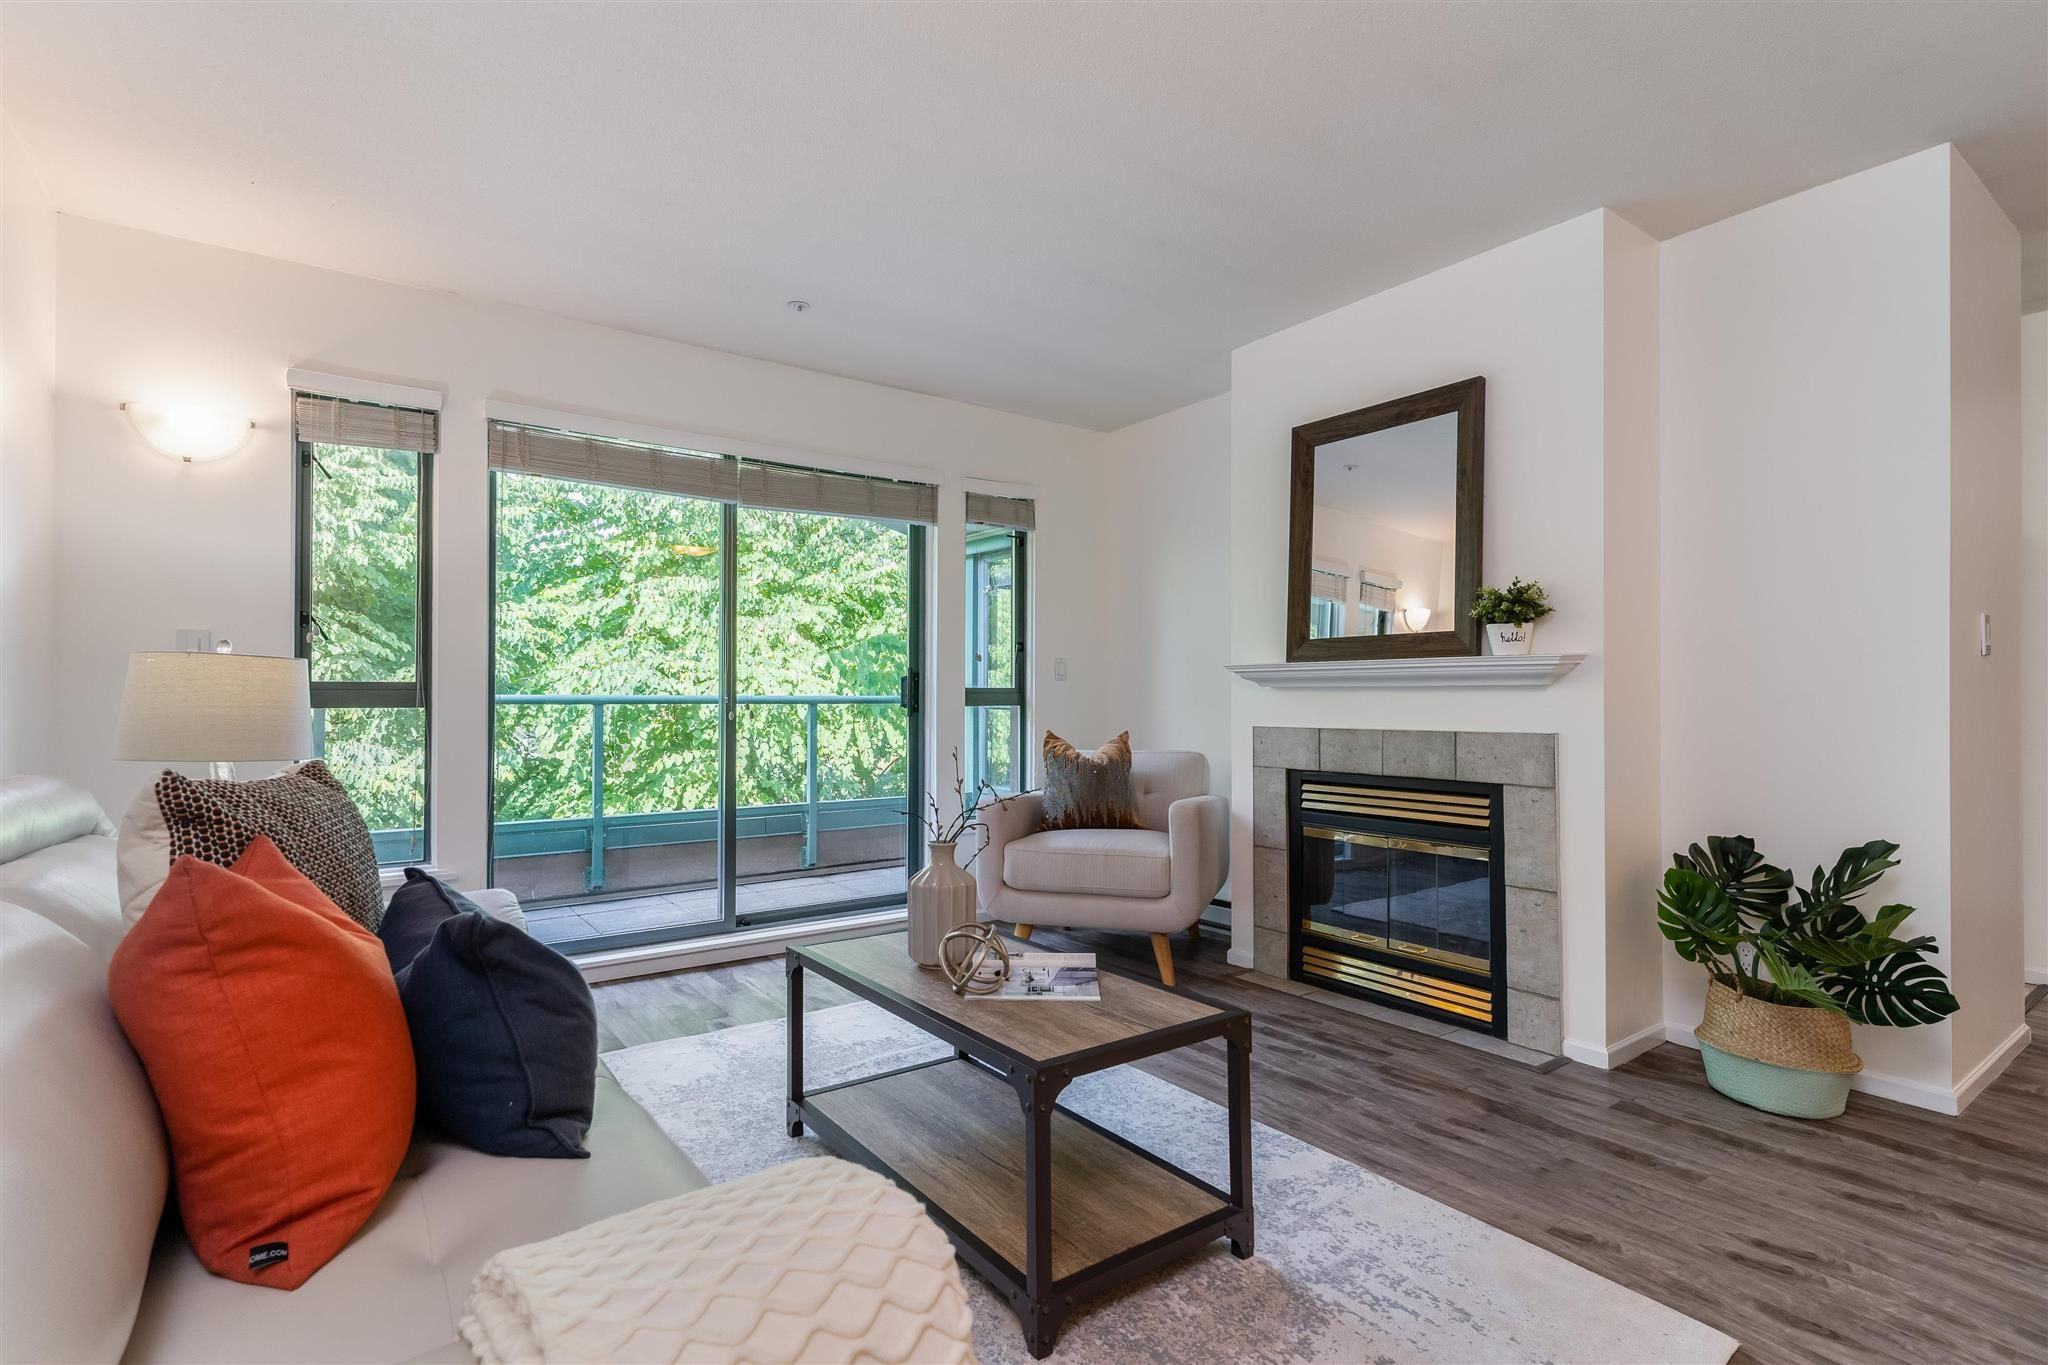 Main Photo: PH12 223 MOUNTAIN HIGHWAY in North Vancouver: Lynnmour Condo for sale : MLS®# R2601395